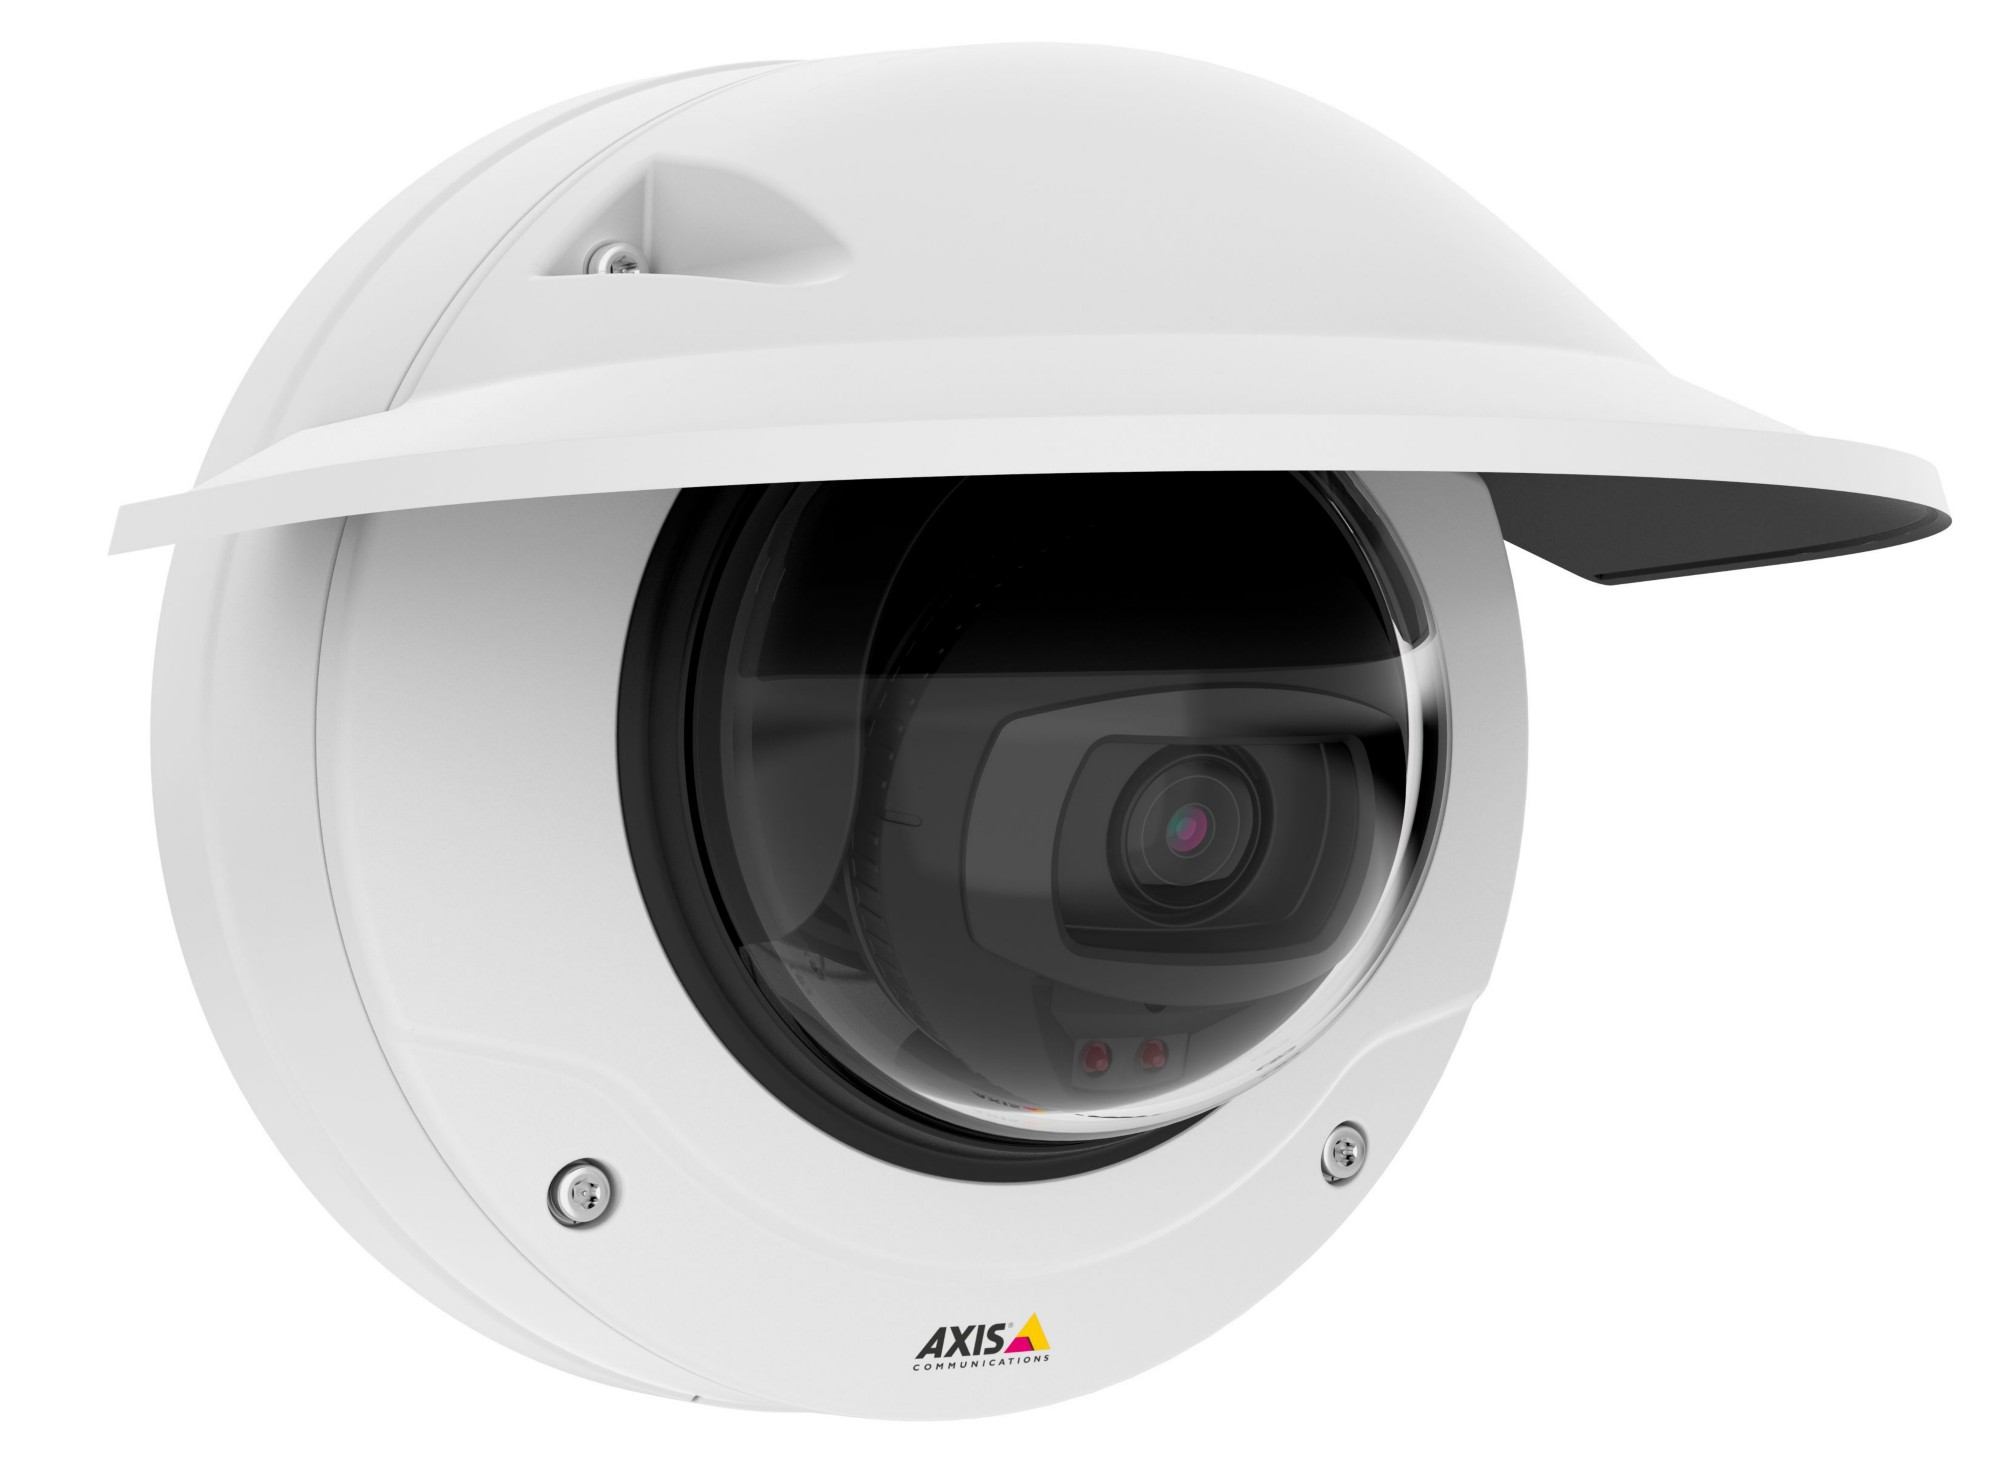 AXIS 01046-001 Q3515-LVE IP SECURITY CAMERA OUTDOOR DOME WHITE 1920 X 1080PIXELS